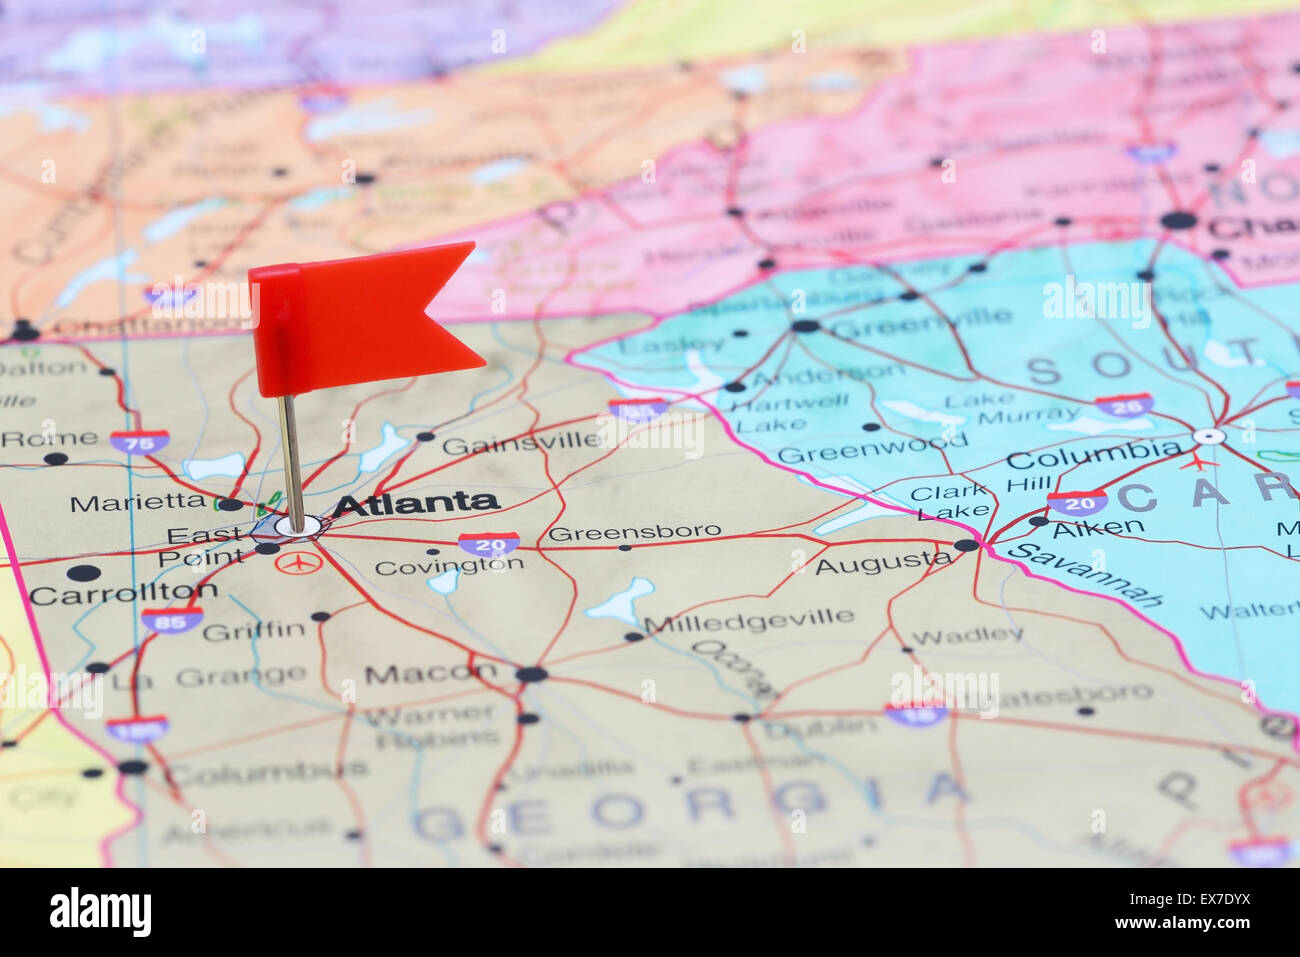 Atlanta On Map Of Usa.Atlanta Pinned On Map Usa Stock Photos Atlanta Pinned On Map Usa